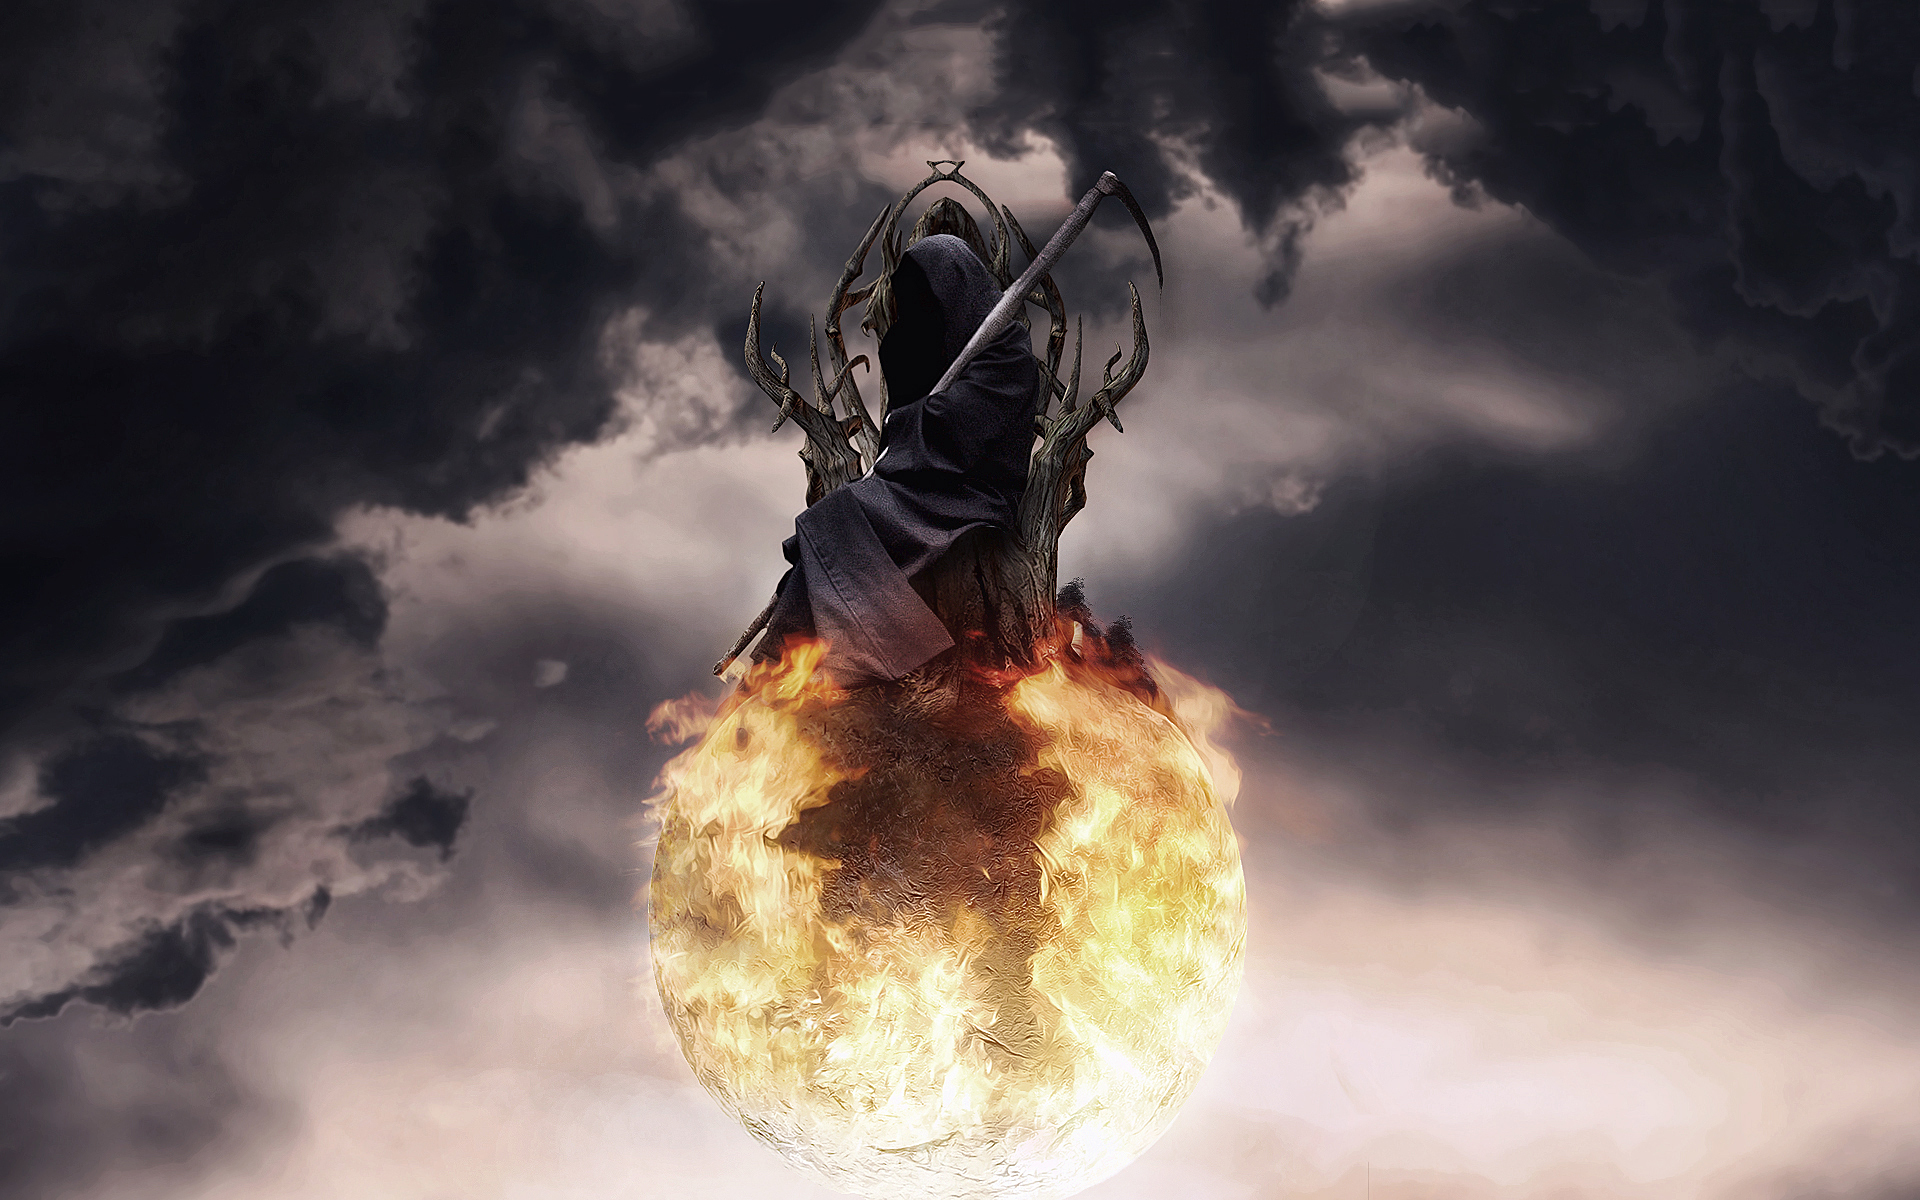 Grim reaper fire ball